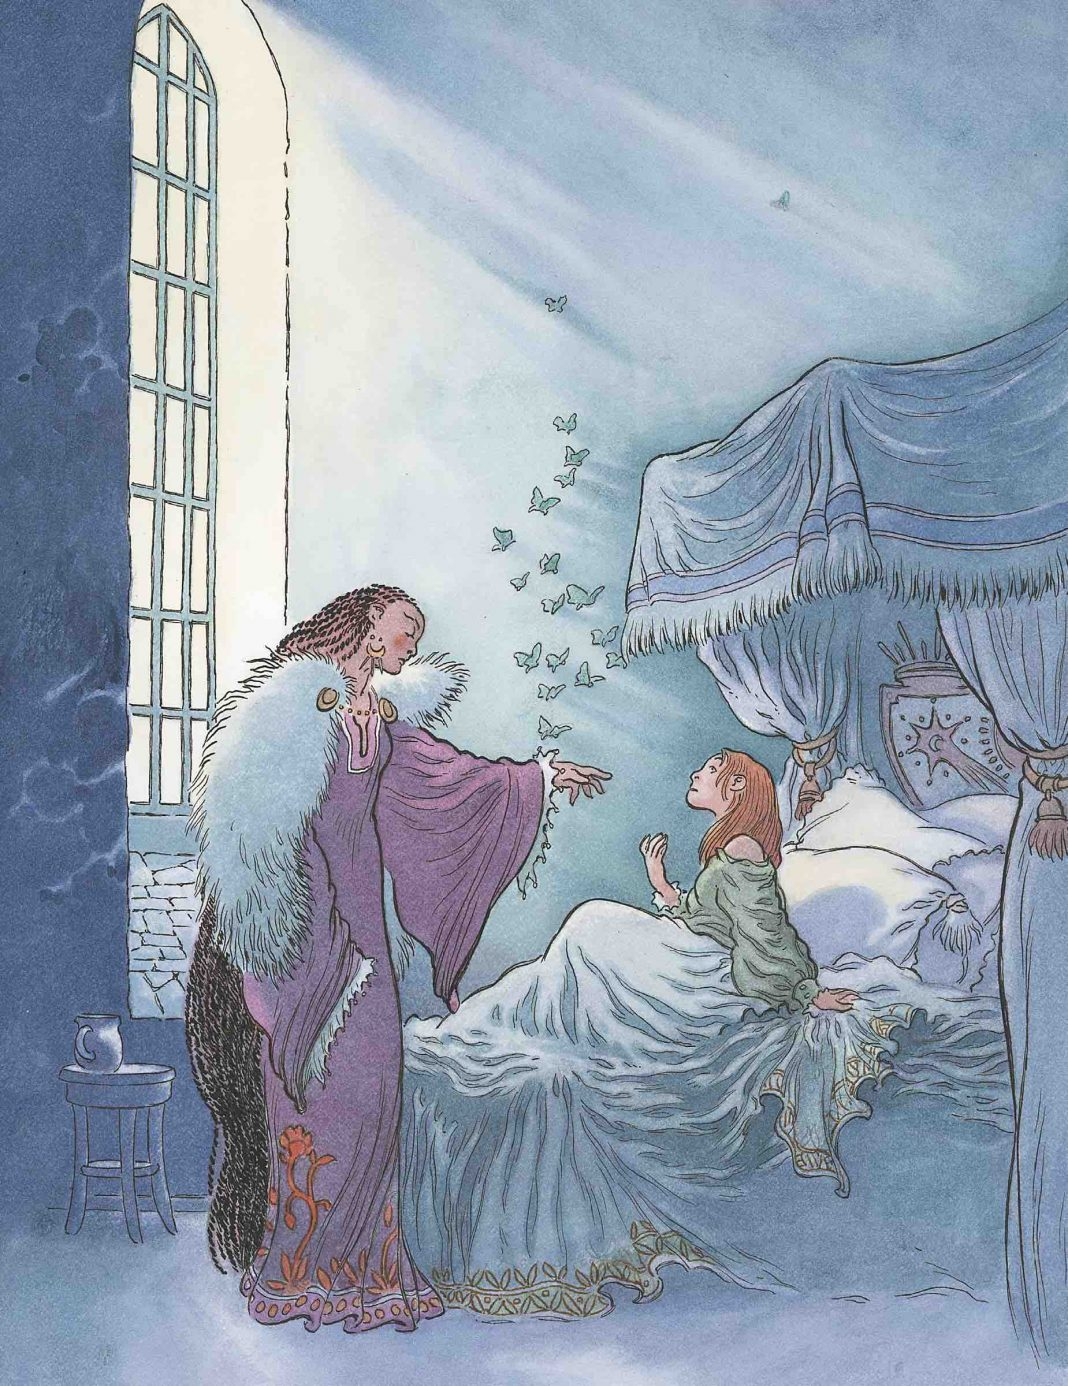 Illustration by Charles Vess for Honeycomb. Chapter 66, The Dancing-Shoes